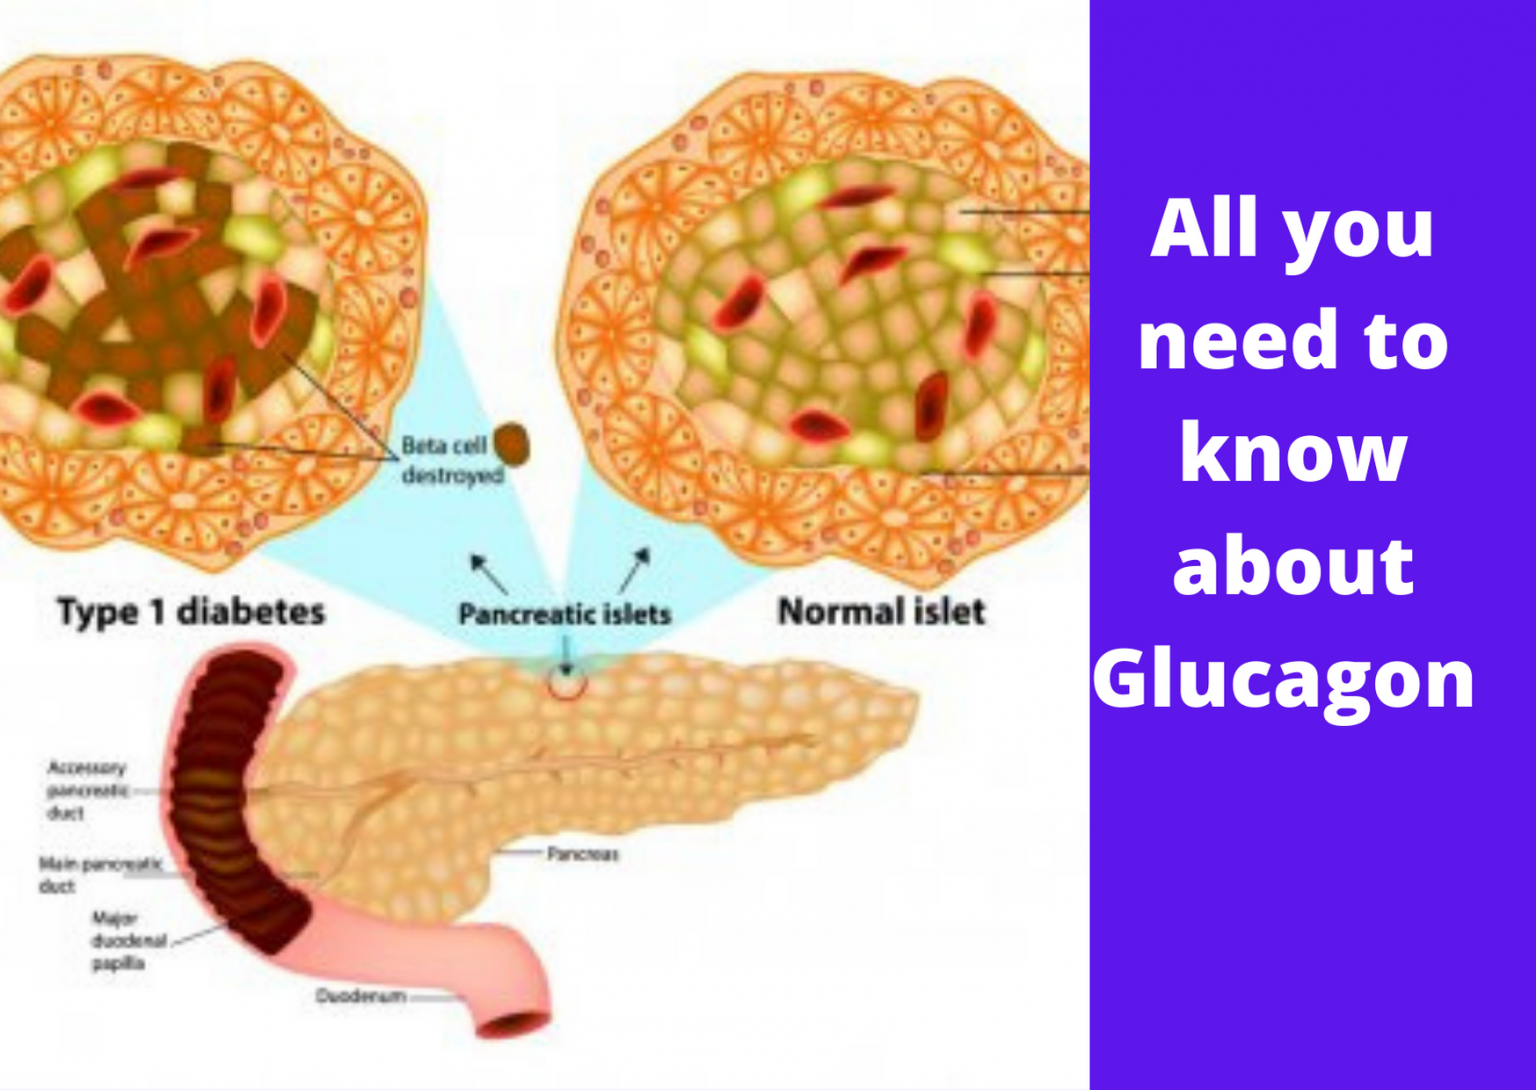 All you need to know about Glucagon